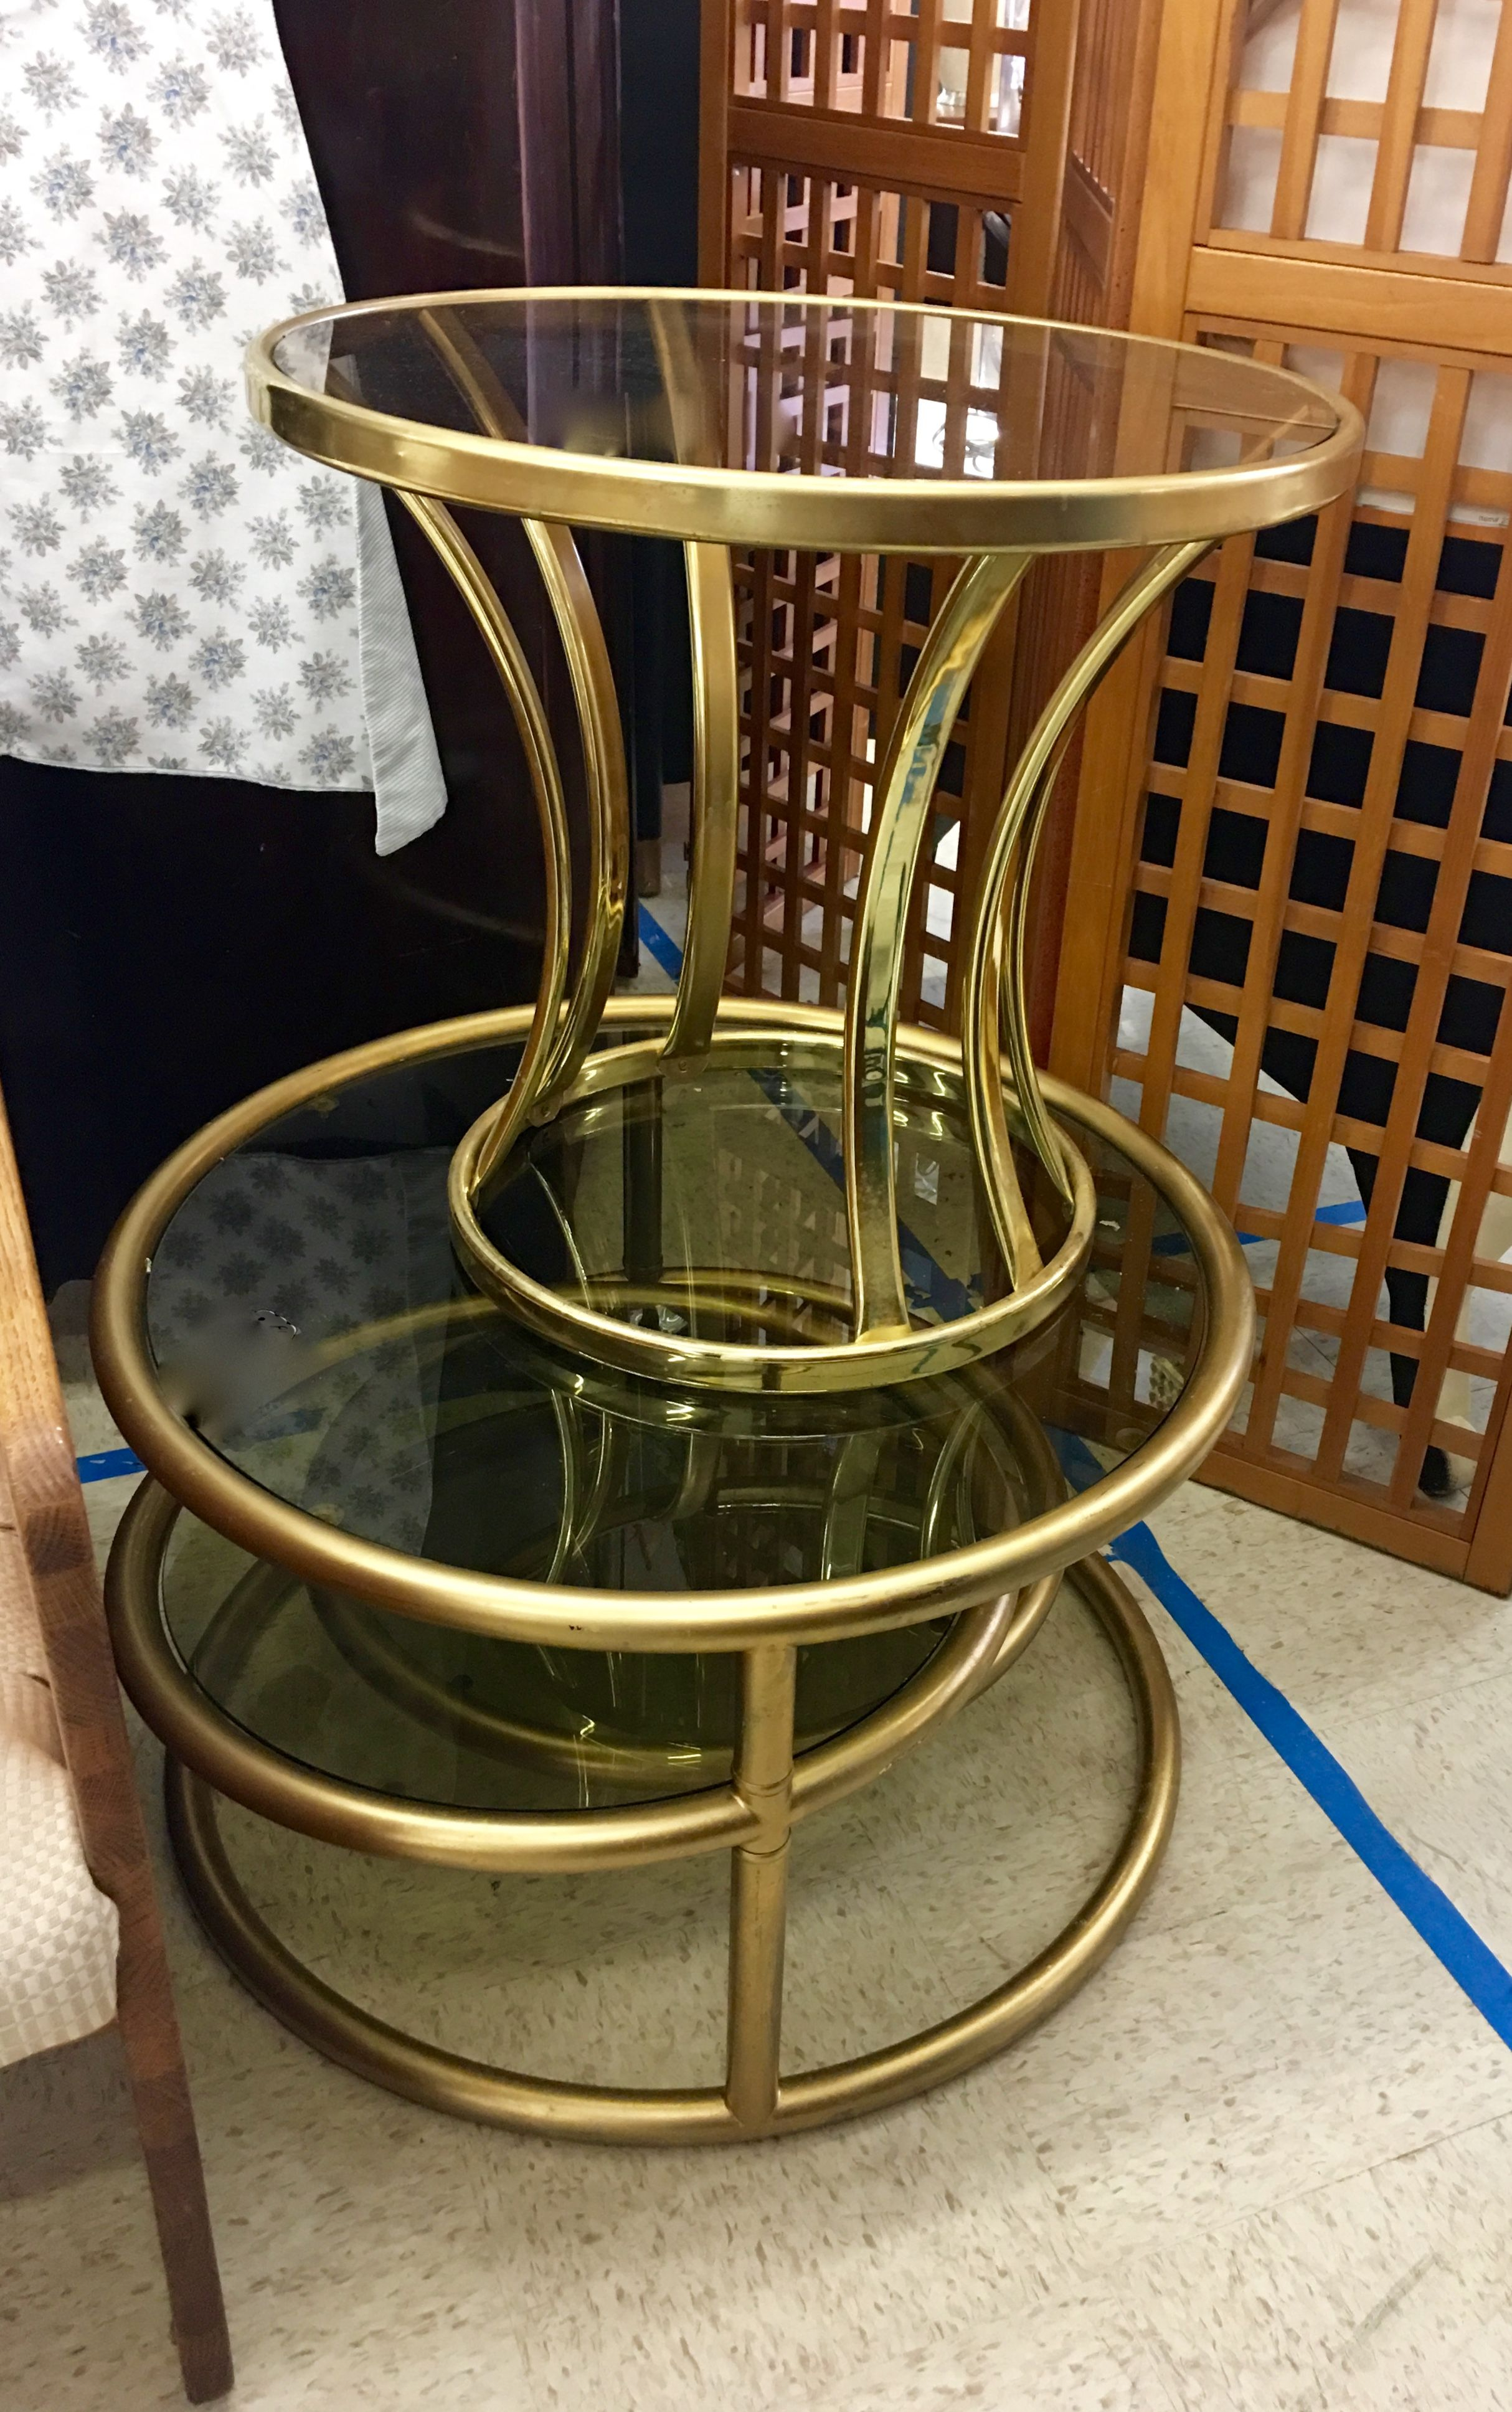 Brass milo table side table 23 diameter x 20 high swing arm top drawer 81 side tables swings dallas coffee tables drawers mid century brass geotapseo Gallery